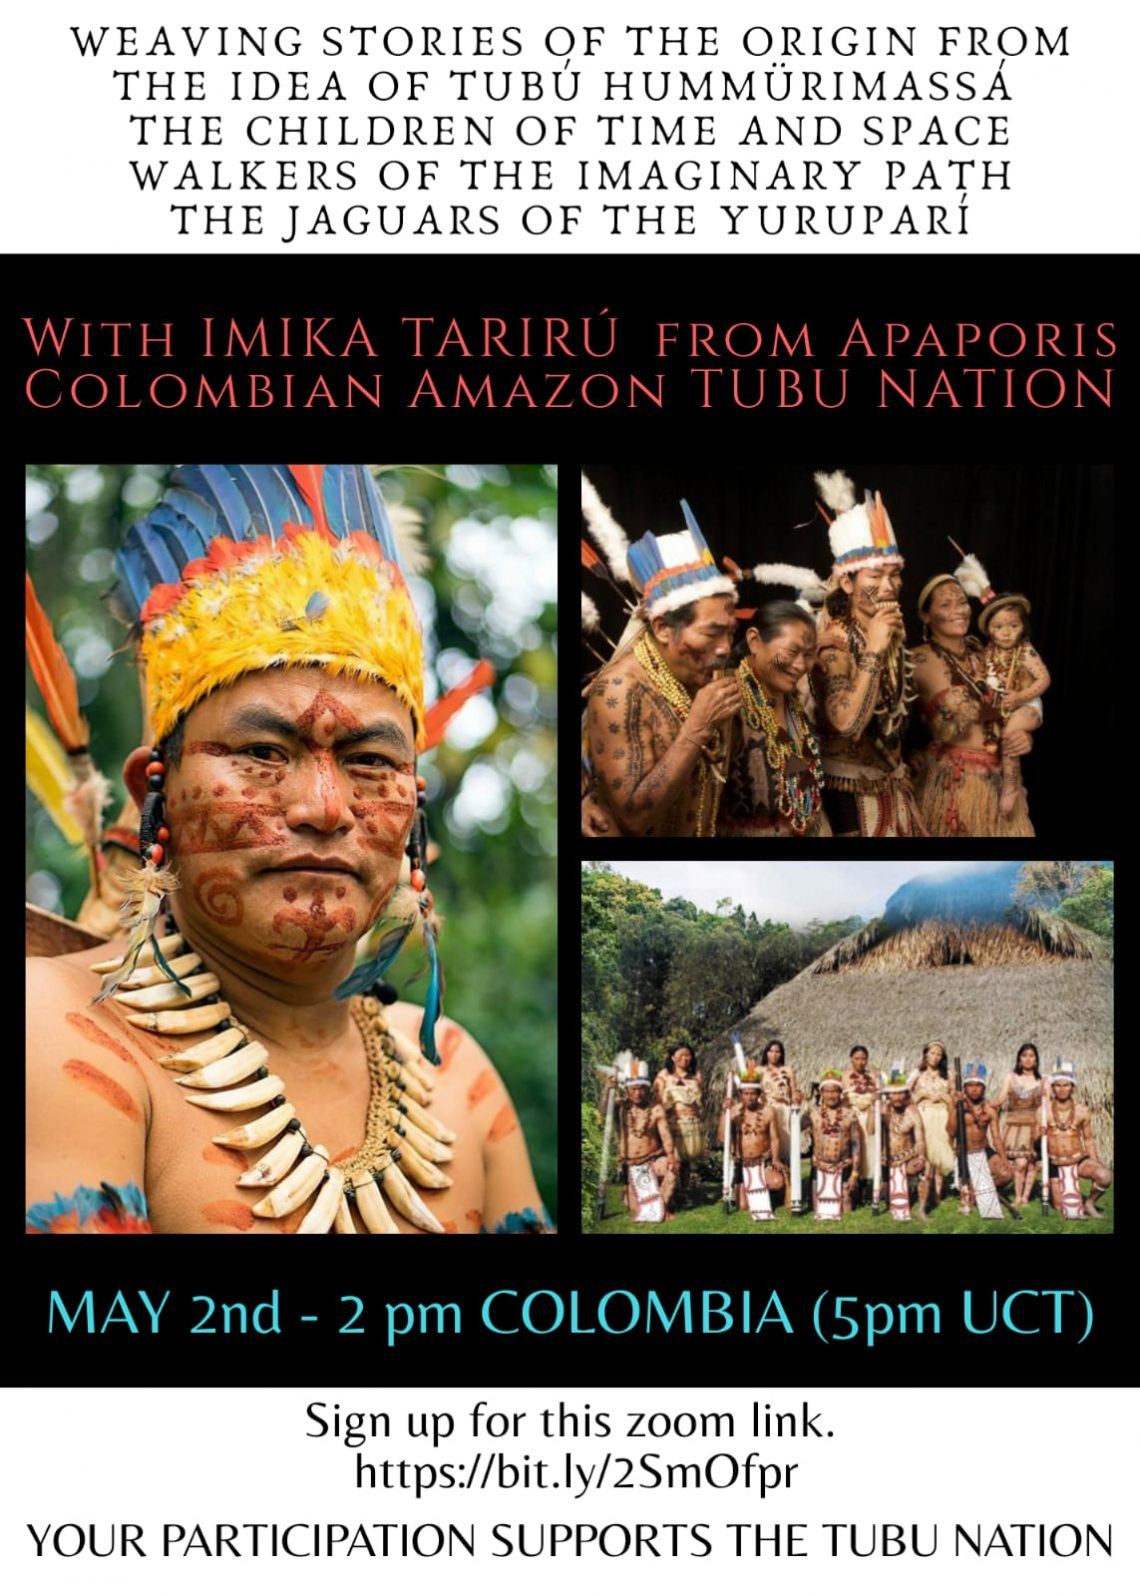 Webinar: Weaving Stories of Origin from the Idea of Tubú Hummürimassá (May 2)